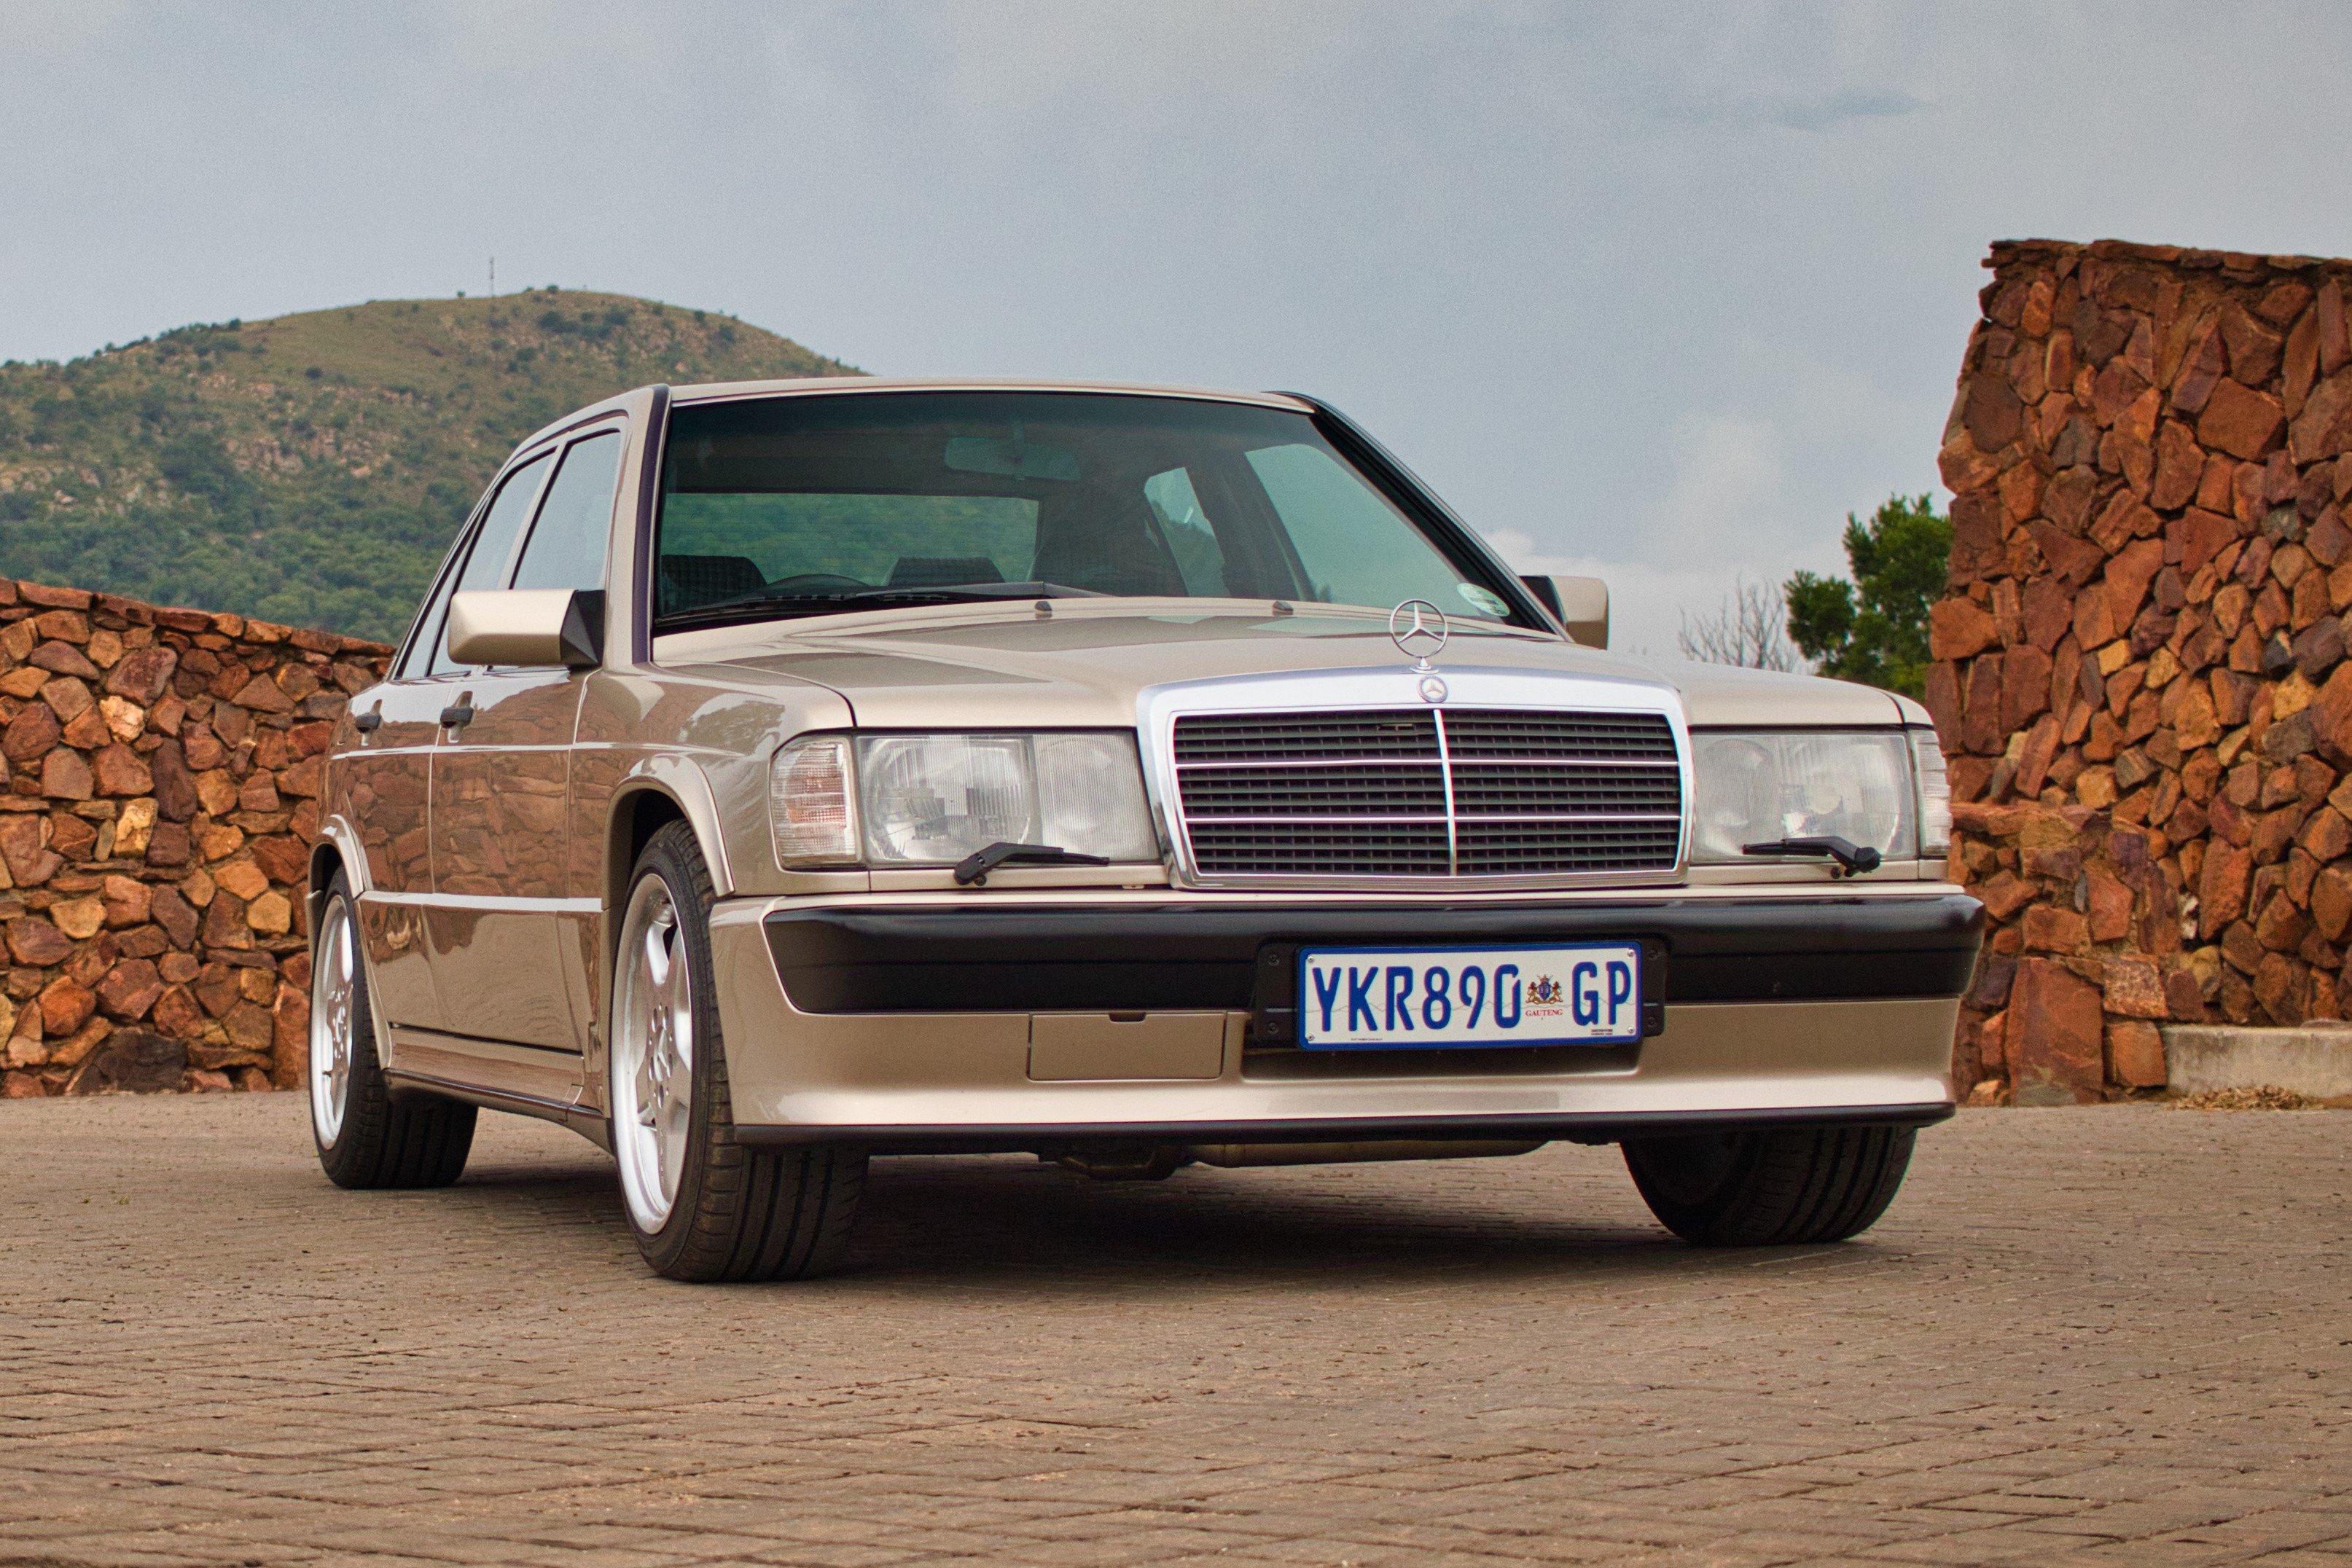 Mercedez-Benz 190E 2.5-16 Cosworth Turbo